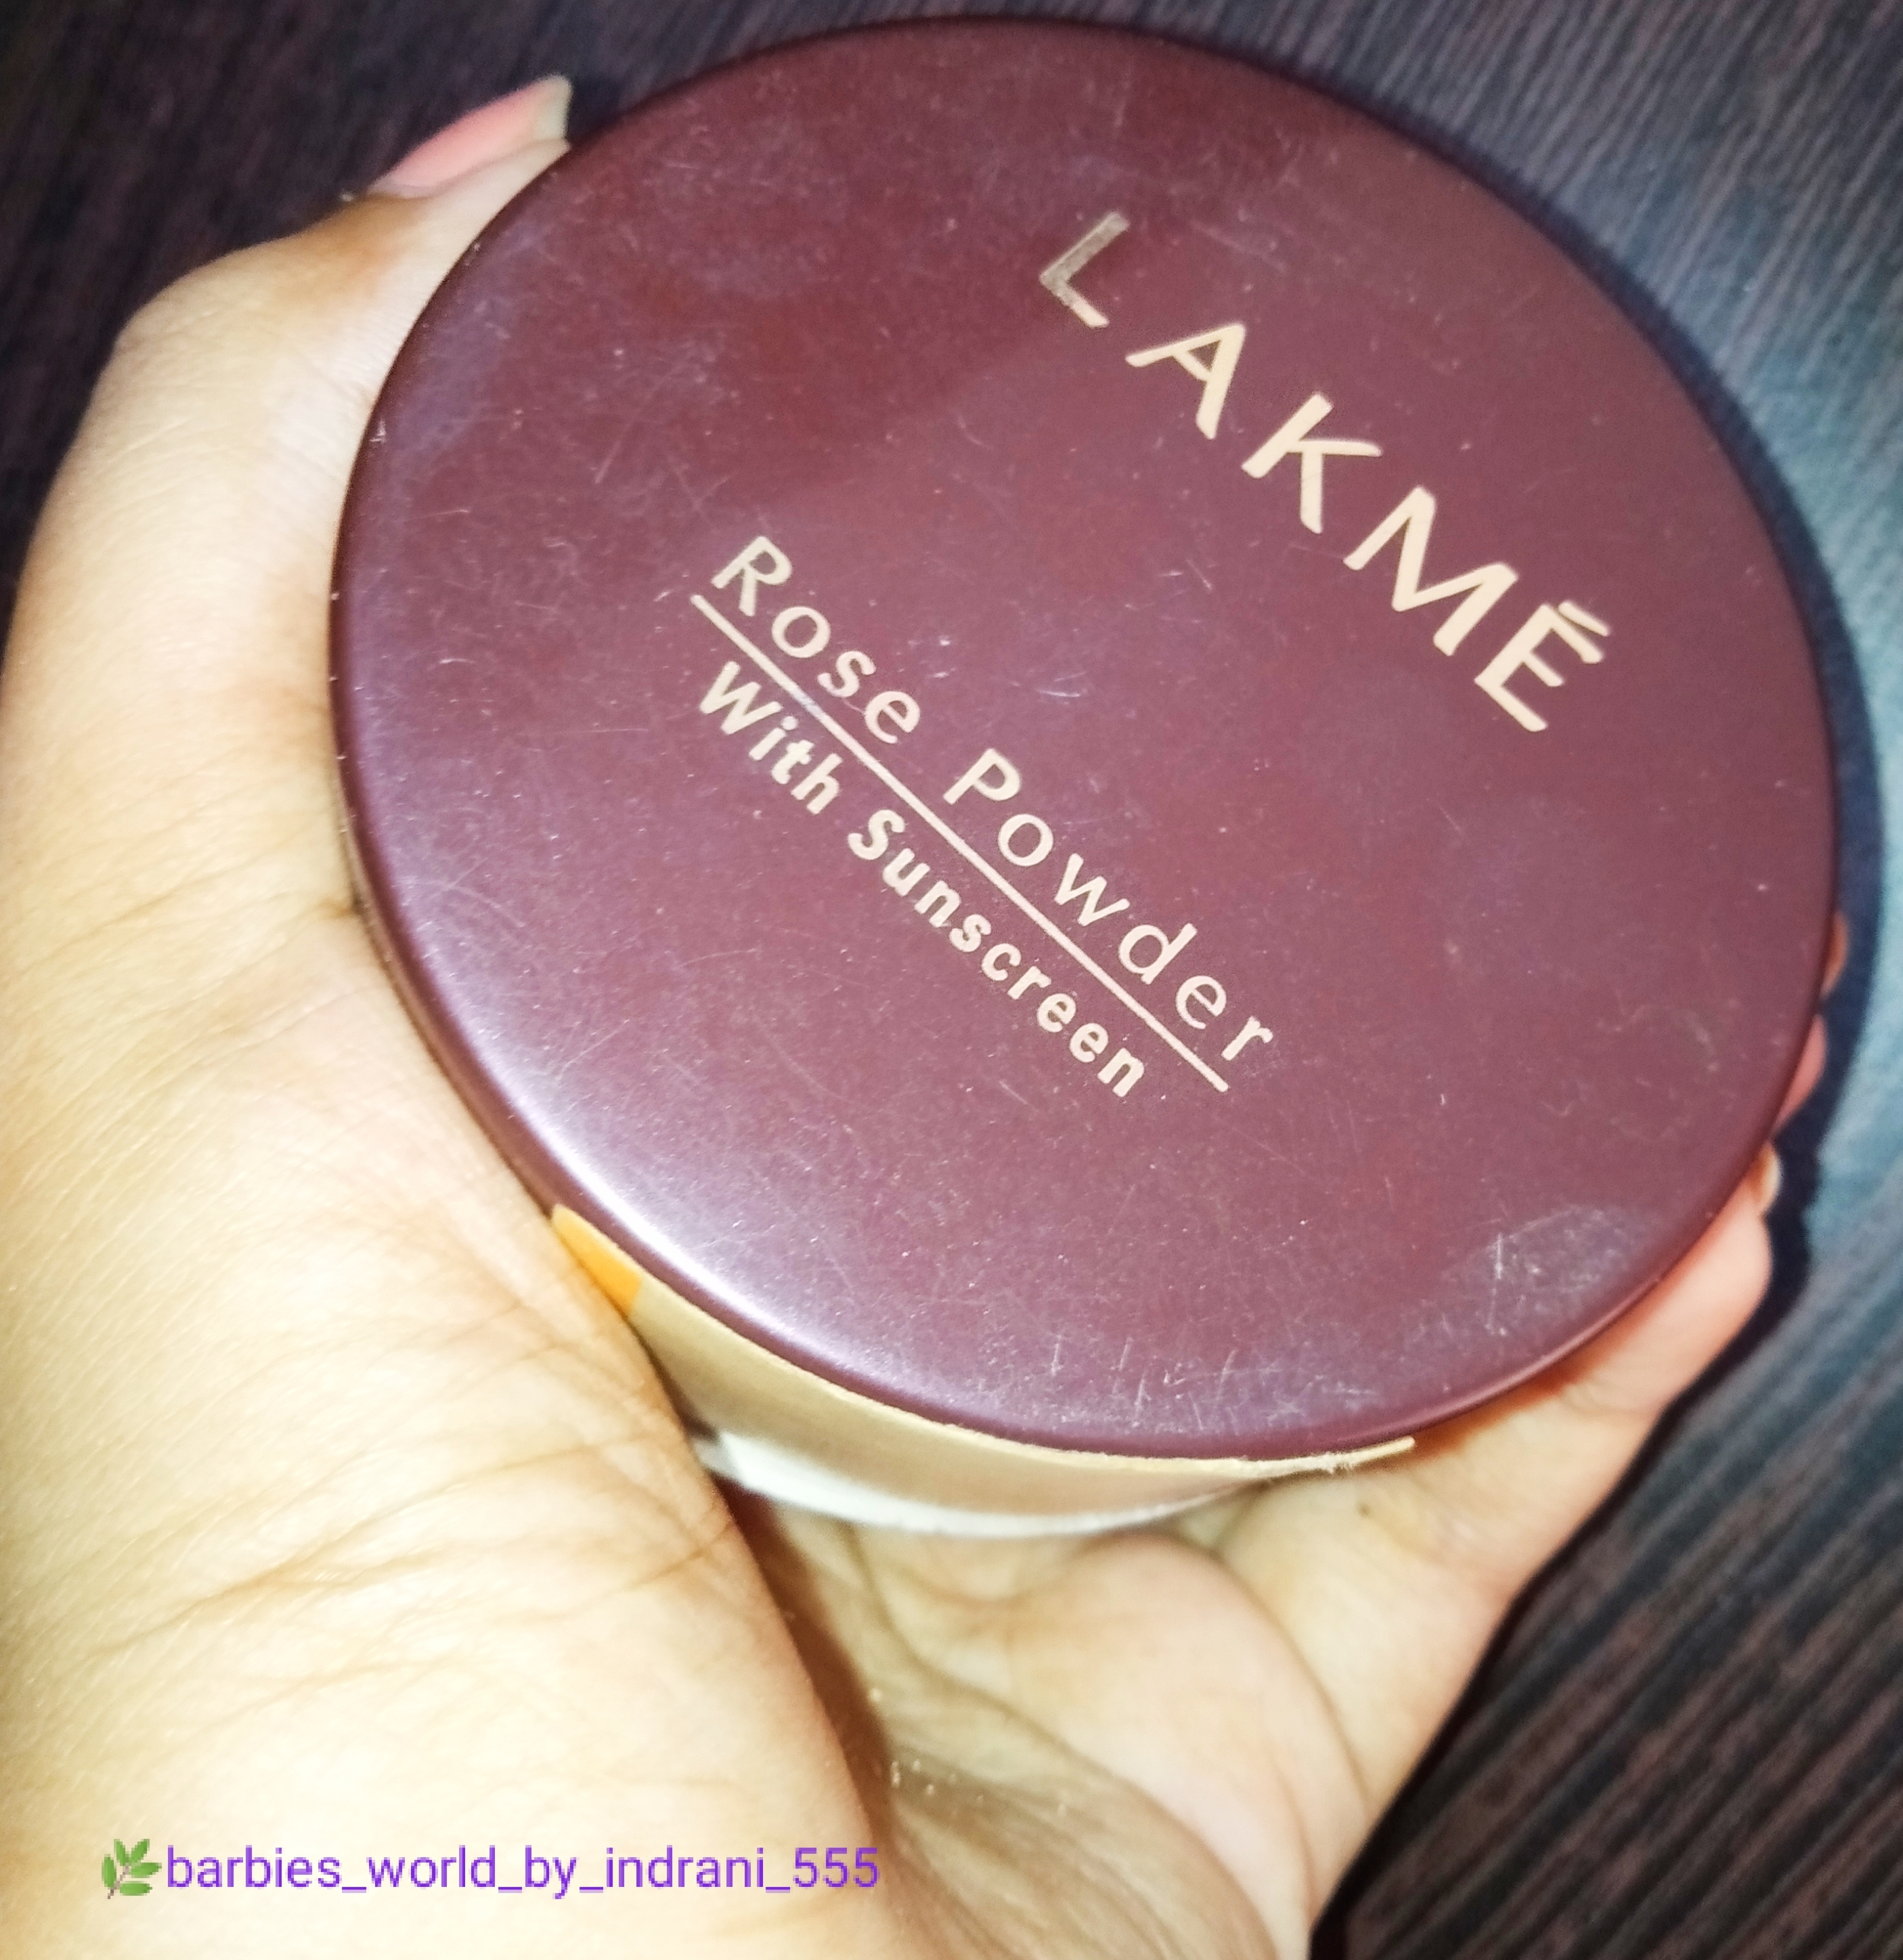 Lakme Rose Powder -Affordable Loose Face Powder-By indranireviews